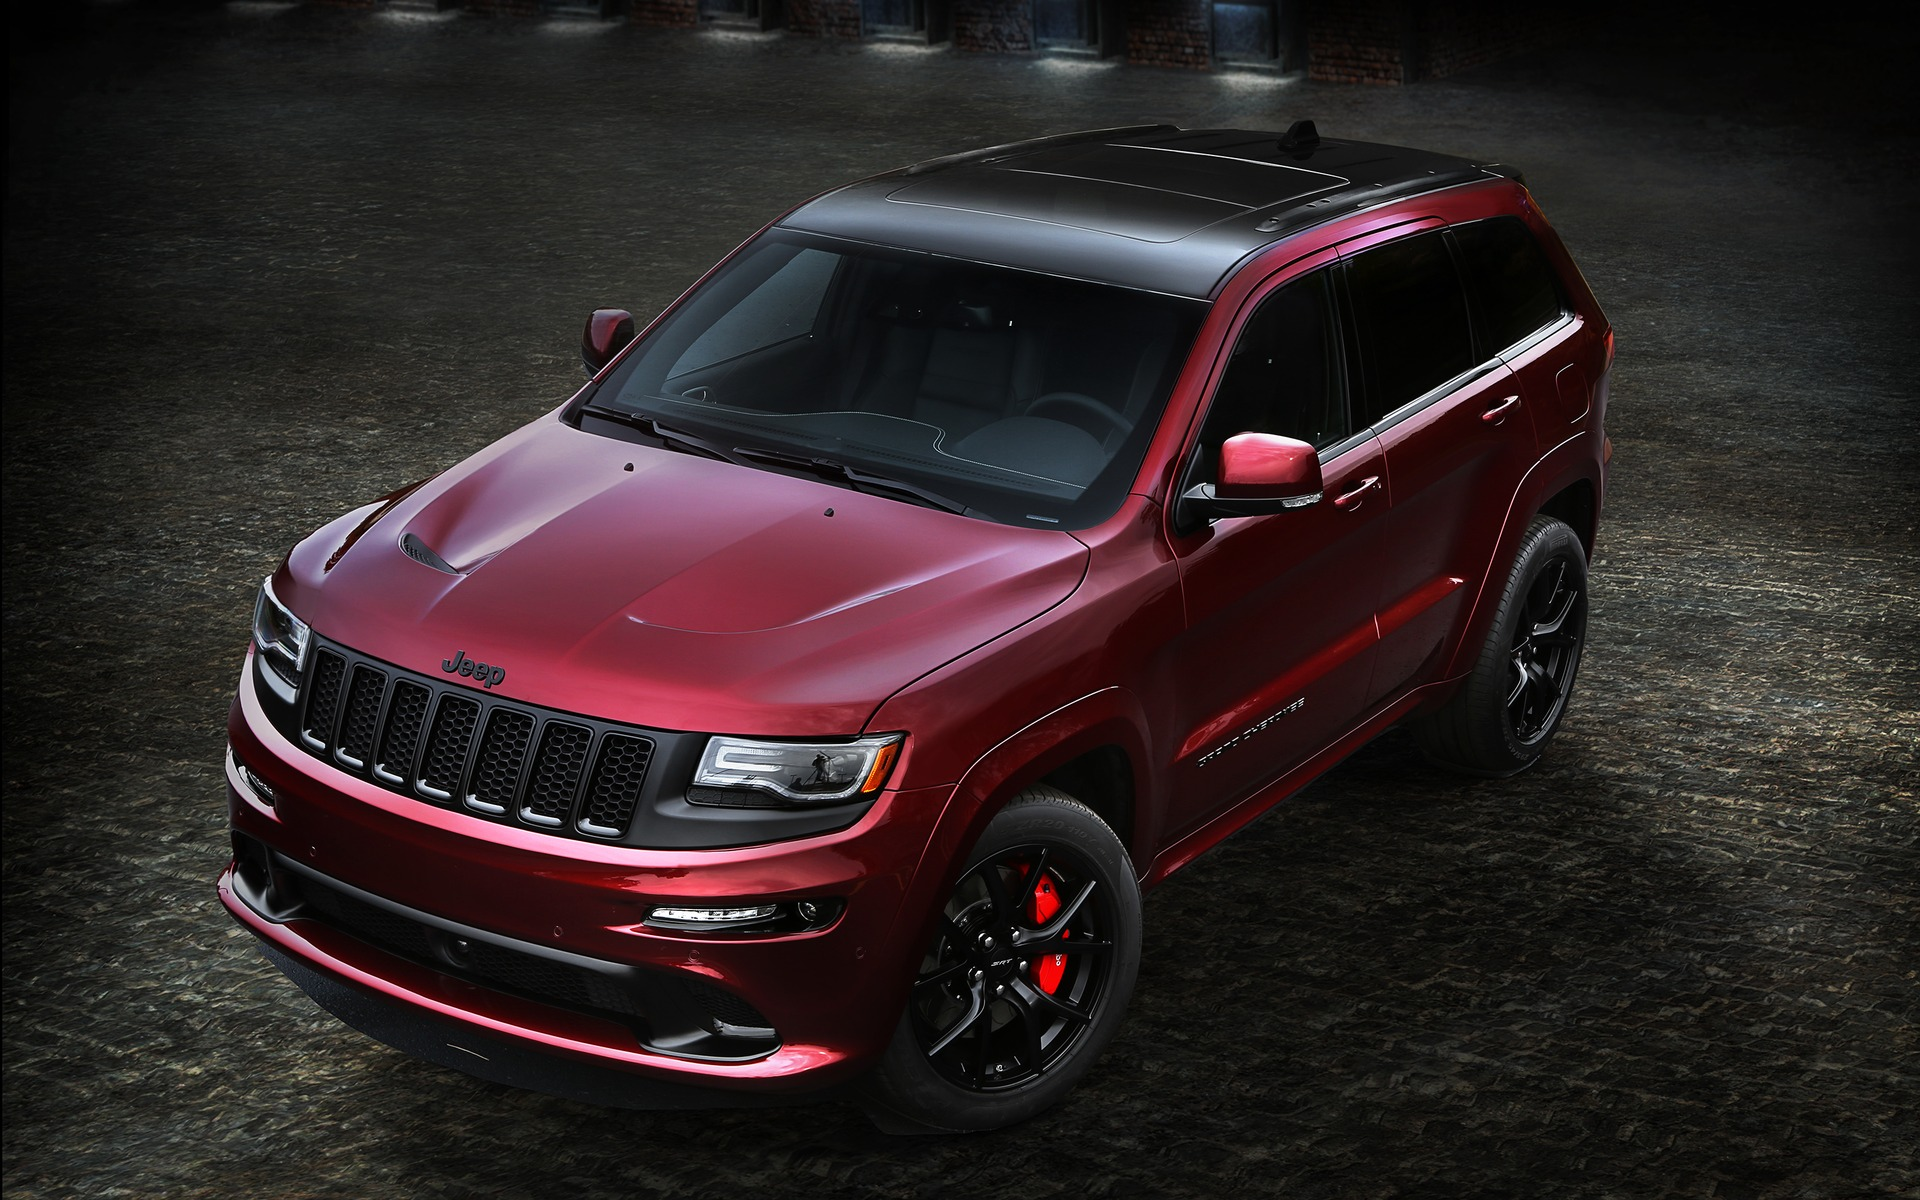 The Hellcatpowered Jeep Grand Cherokee Will Arrive In 2017